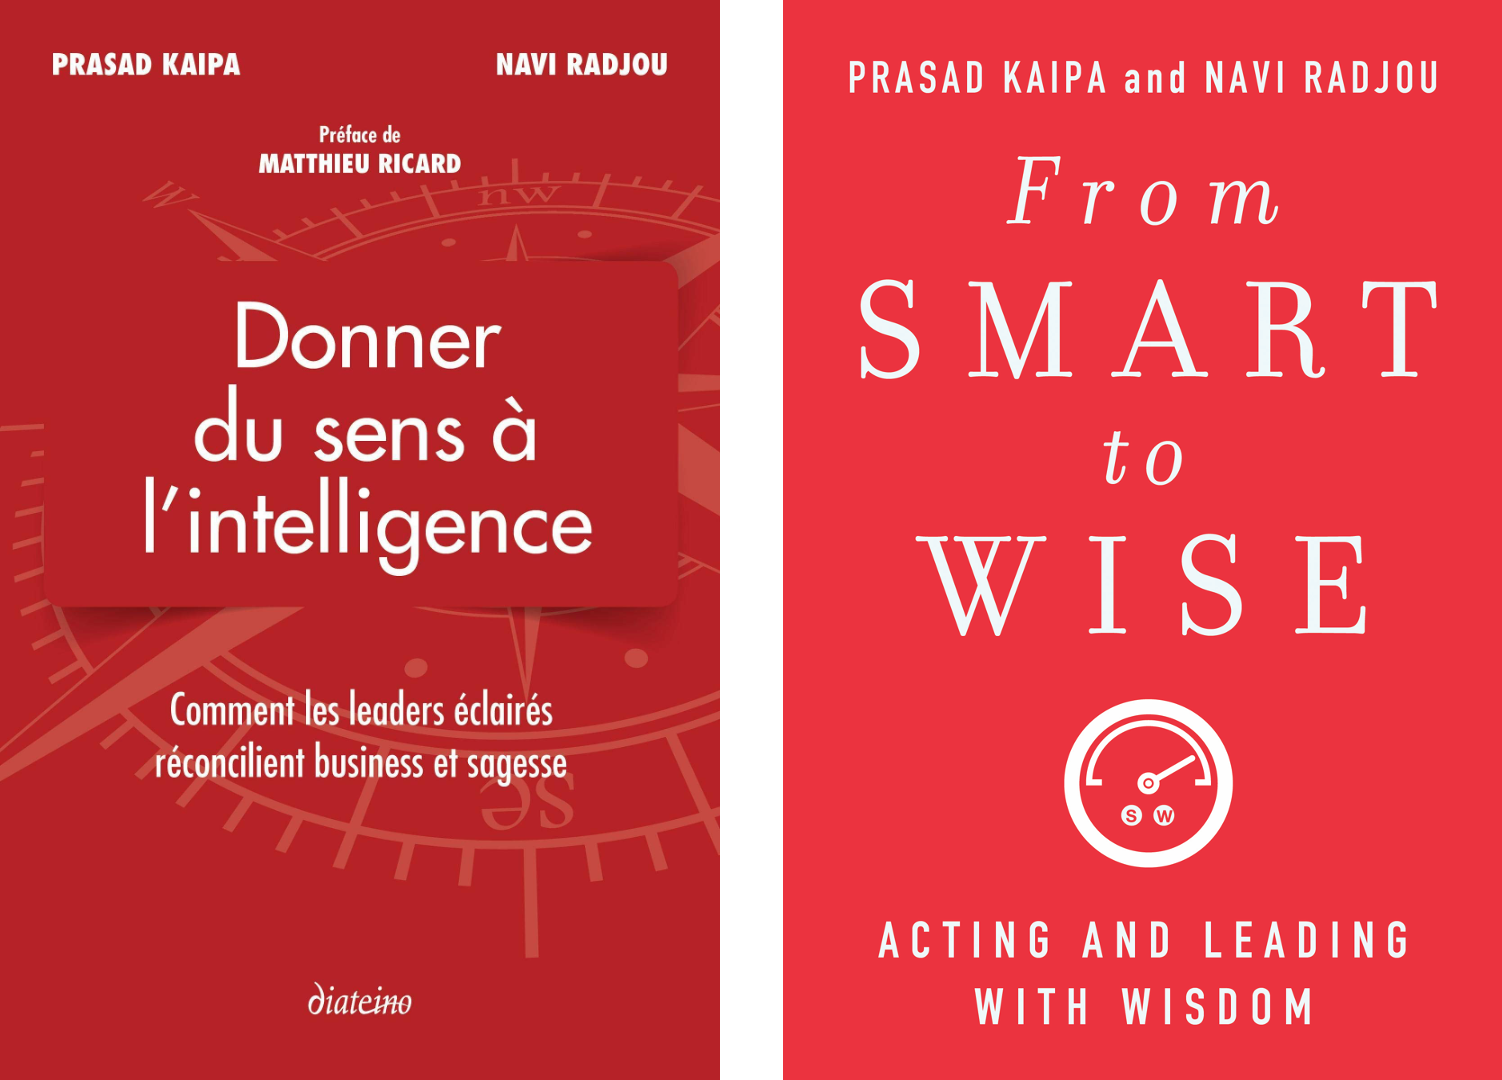 Cover of the book From Smart To Wise by Prasad Kaipa and Navi Radjou